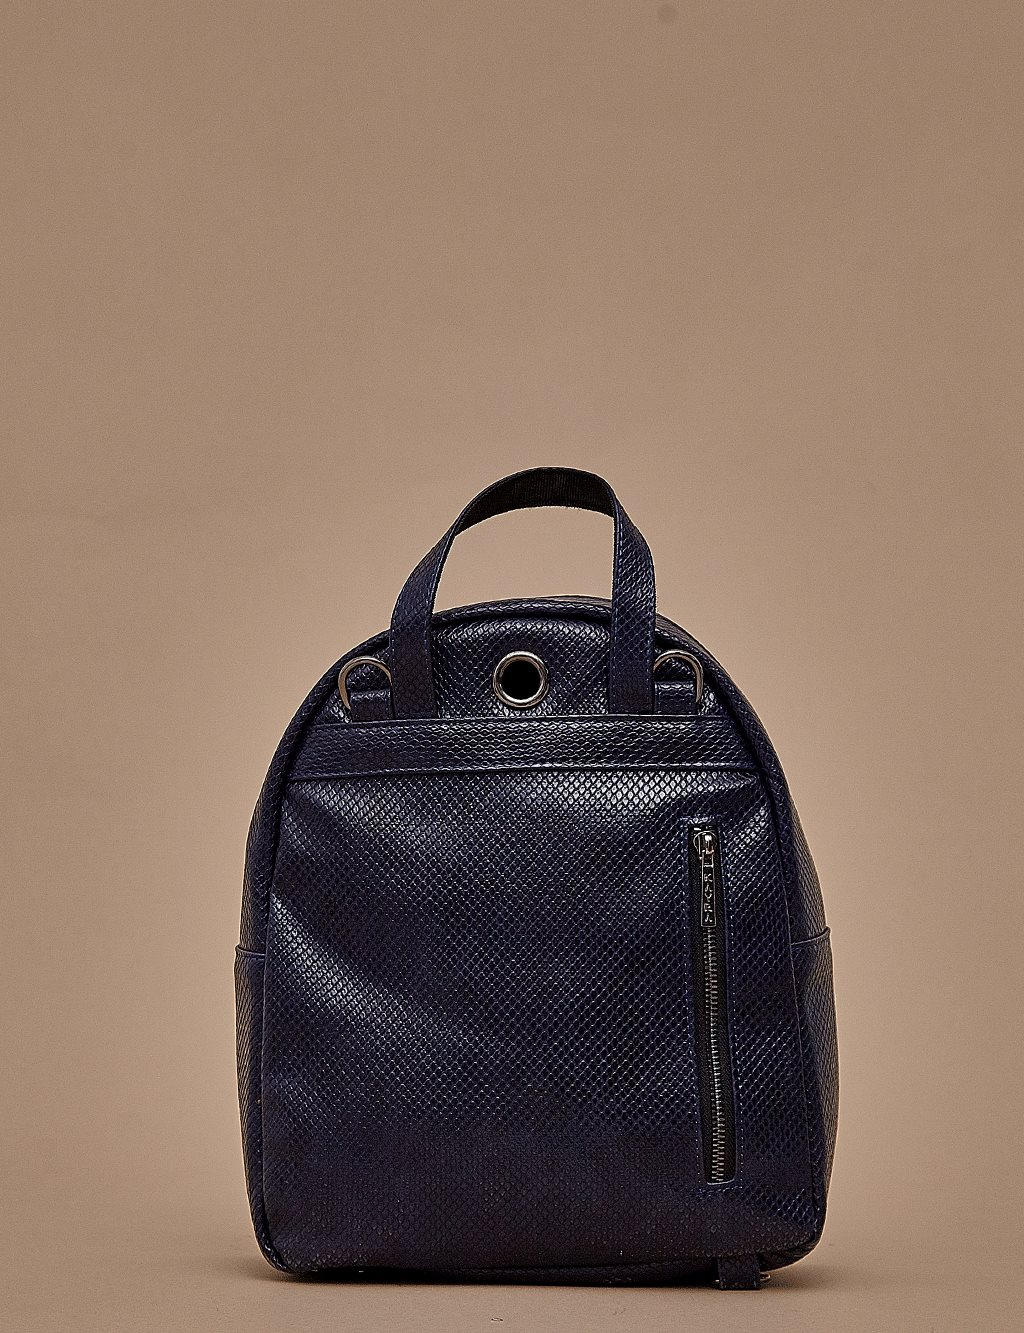 Back Pack A9 CNT02 Navy